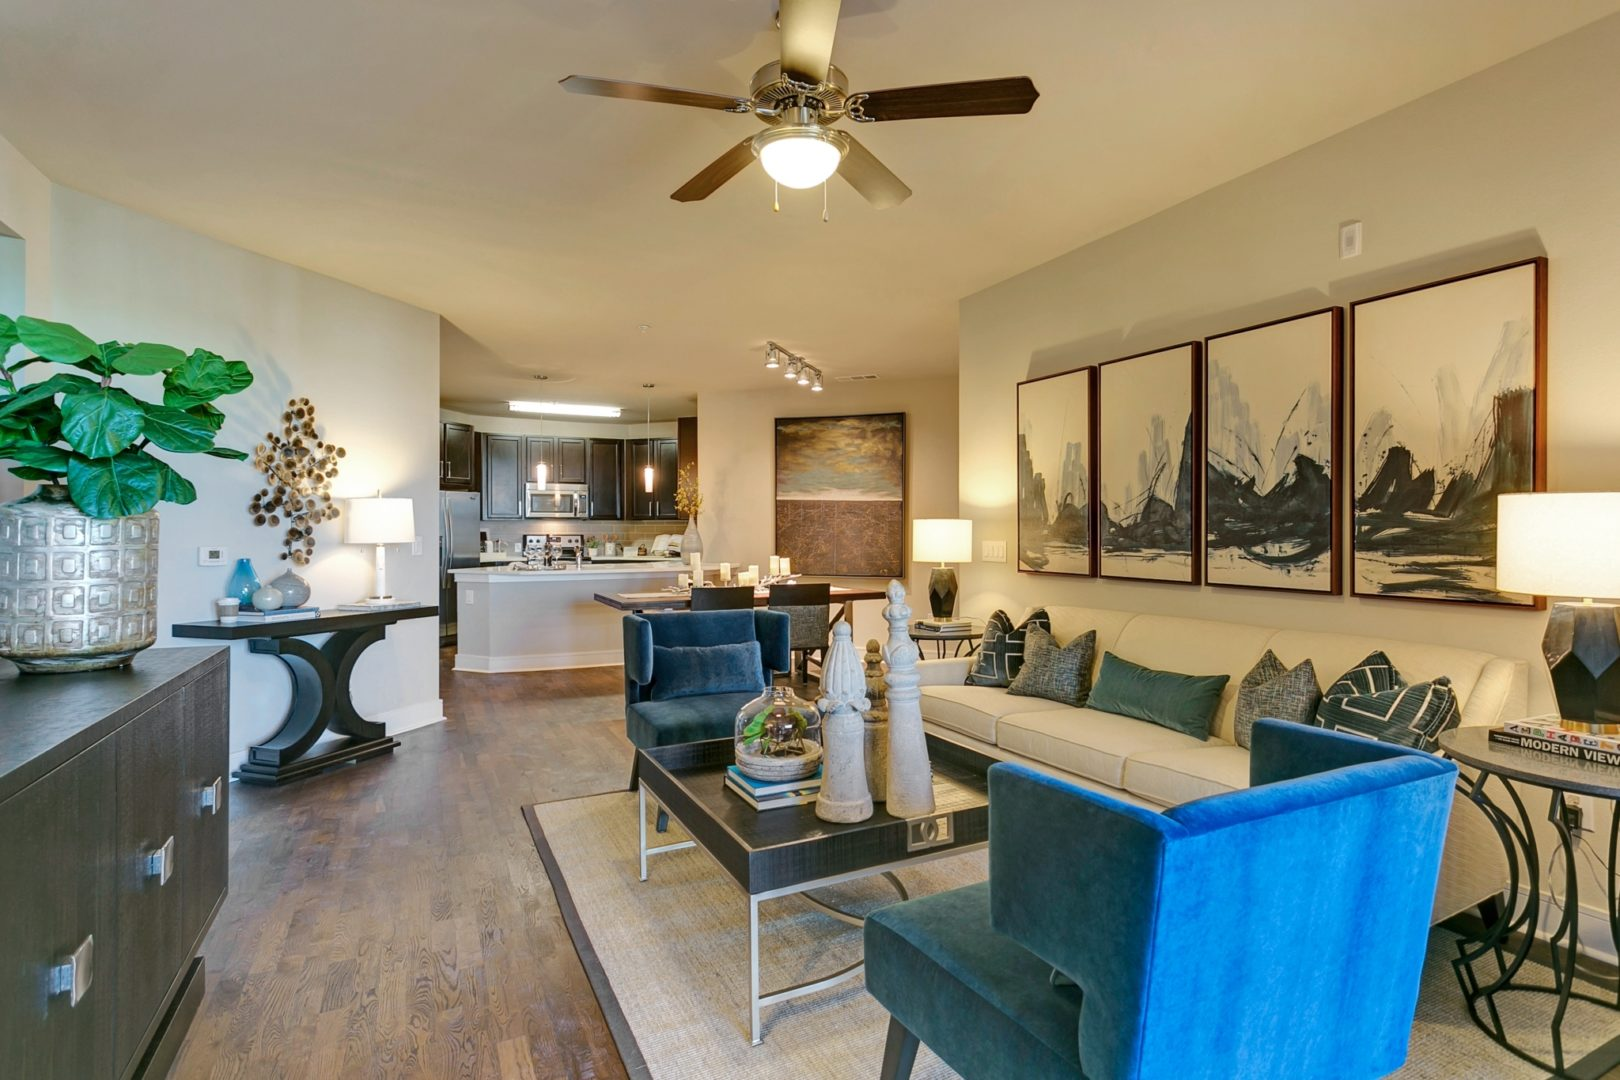 Armstrong at Knox Luxury Rentals